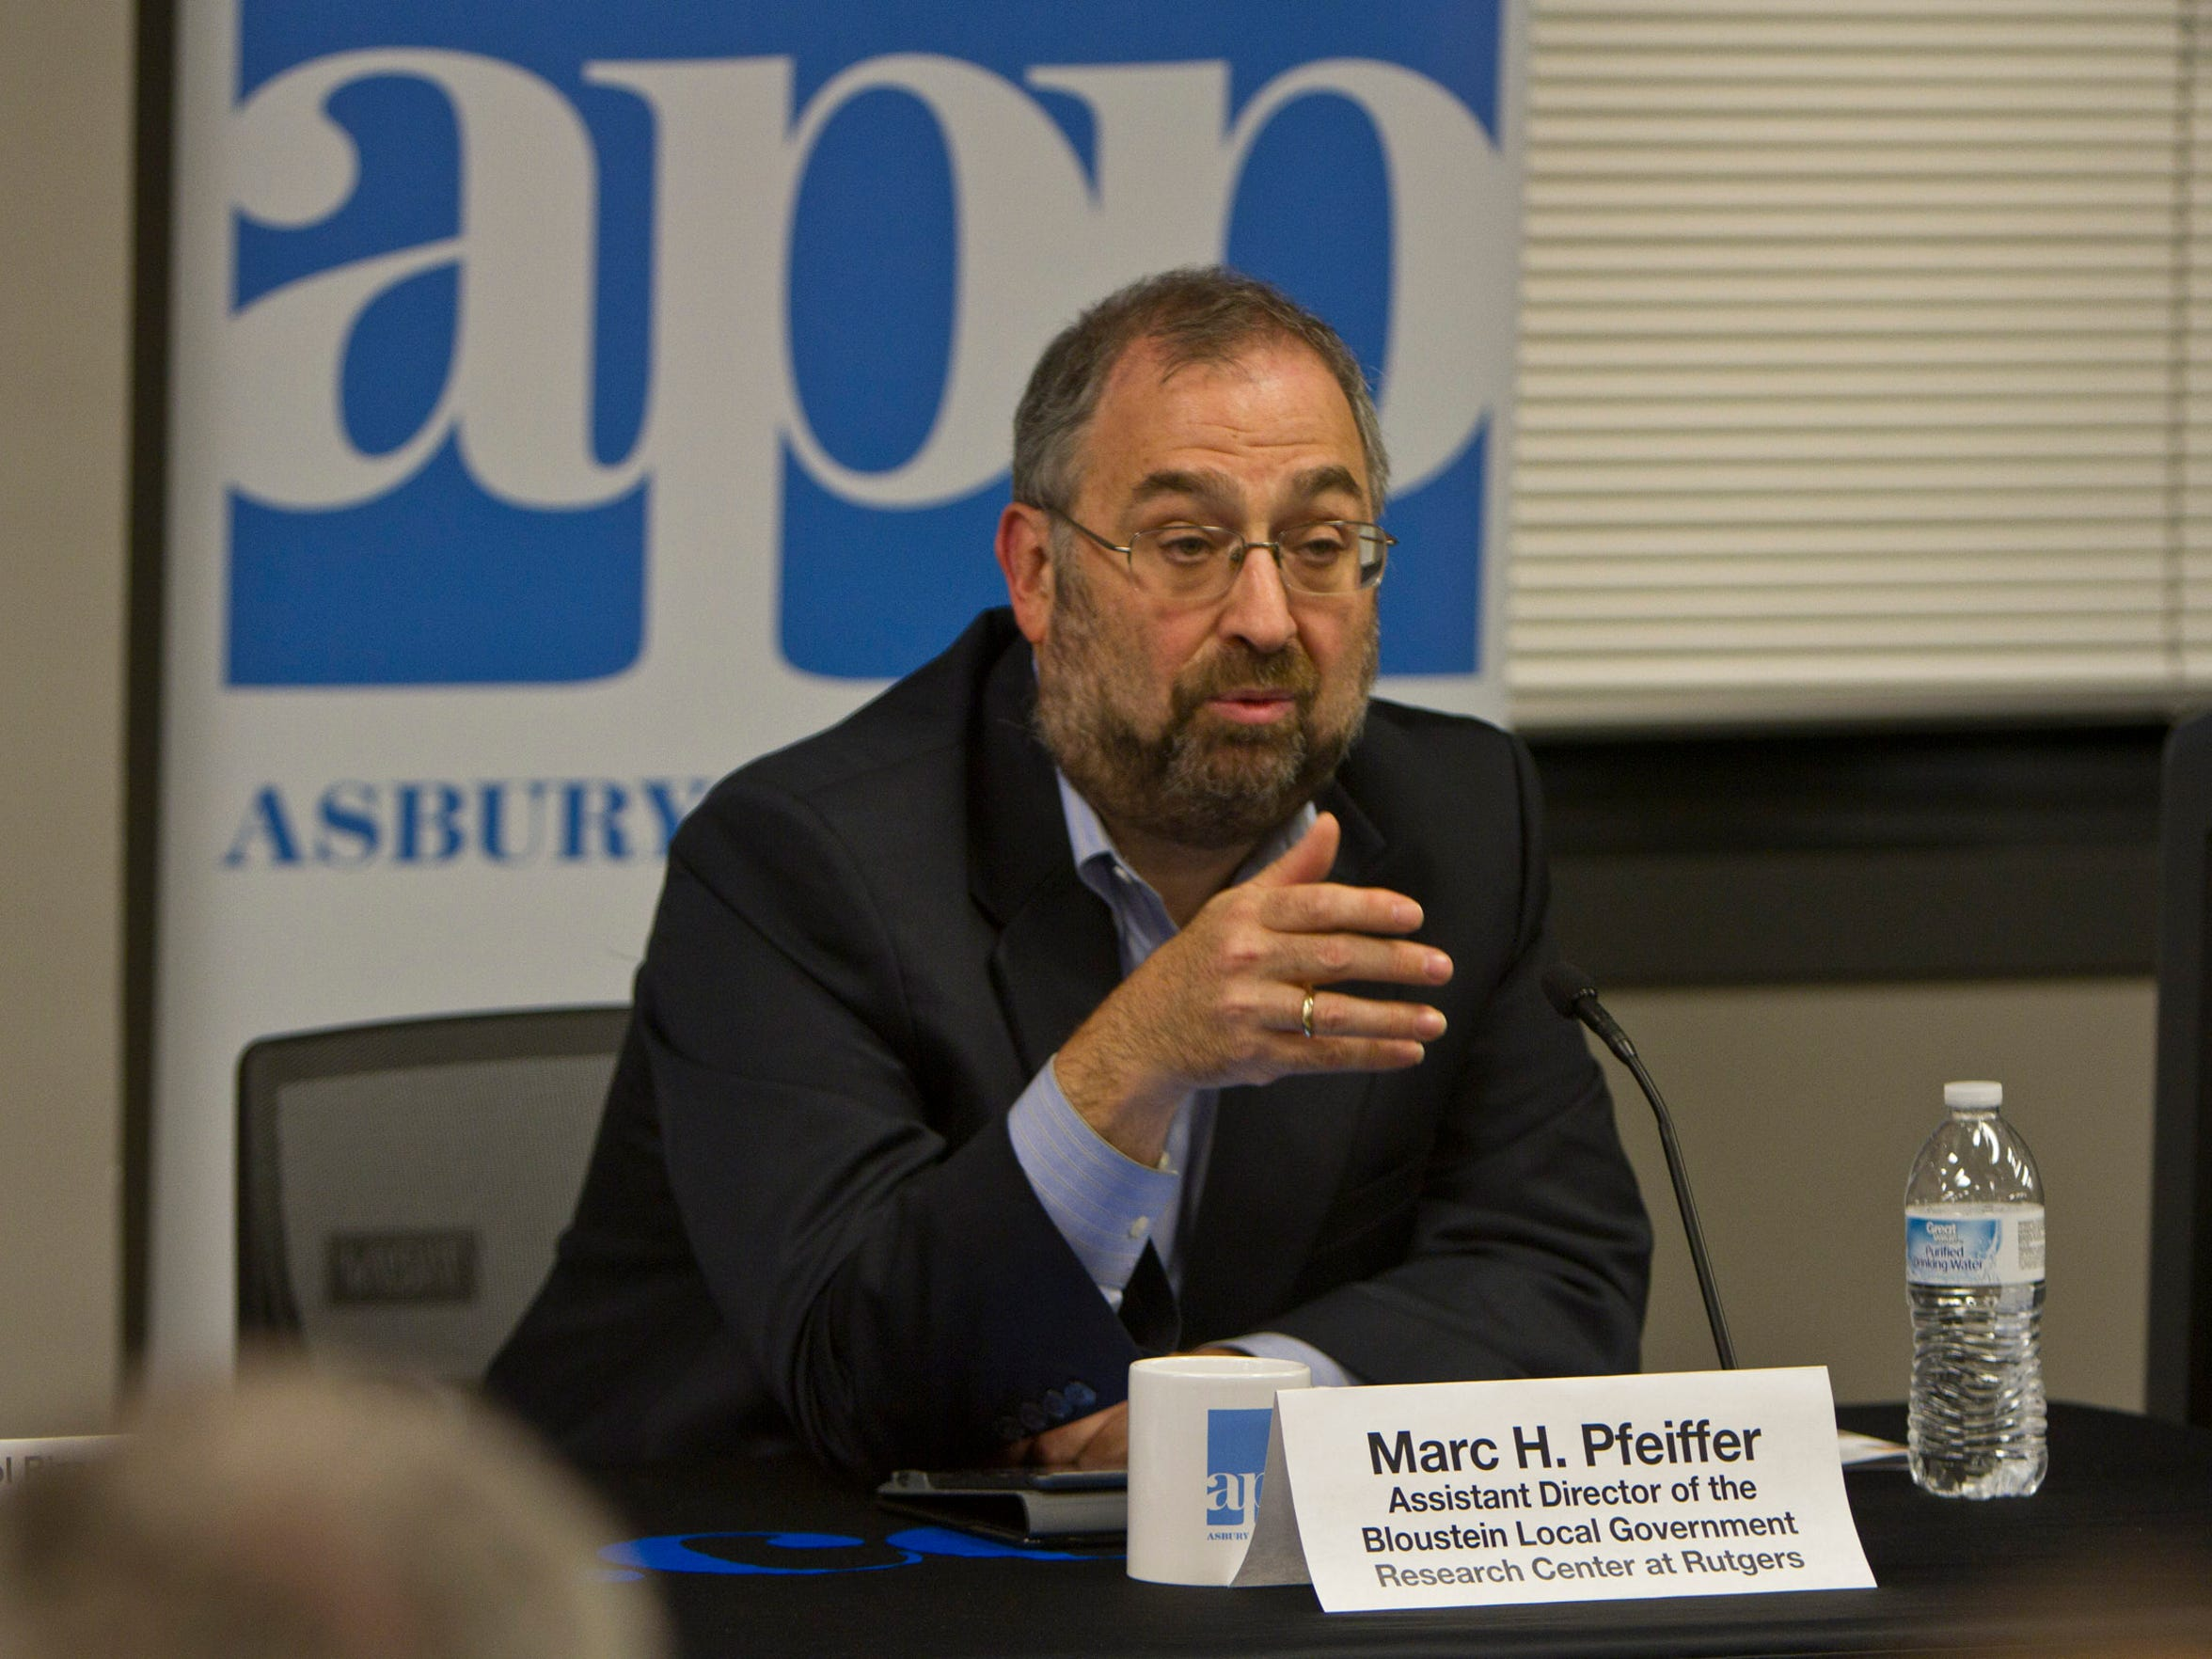 """Marc H. Pfeiffer, Assistant Director of the Bloustein Local Government Research Center at Rutgers, answers questions regarding taxes during the Asbury Park Press' recent """"Taxed Out"""" Town Hall. Neptune, NJ Thursday, October 15, 2015 @dhoodhood"""